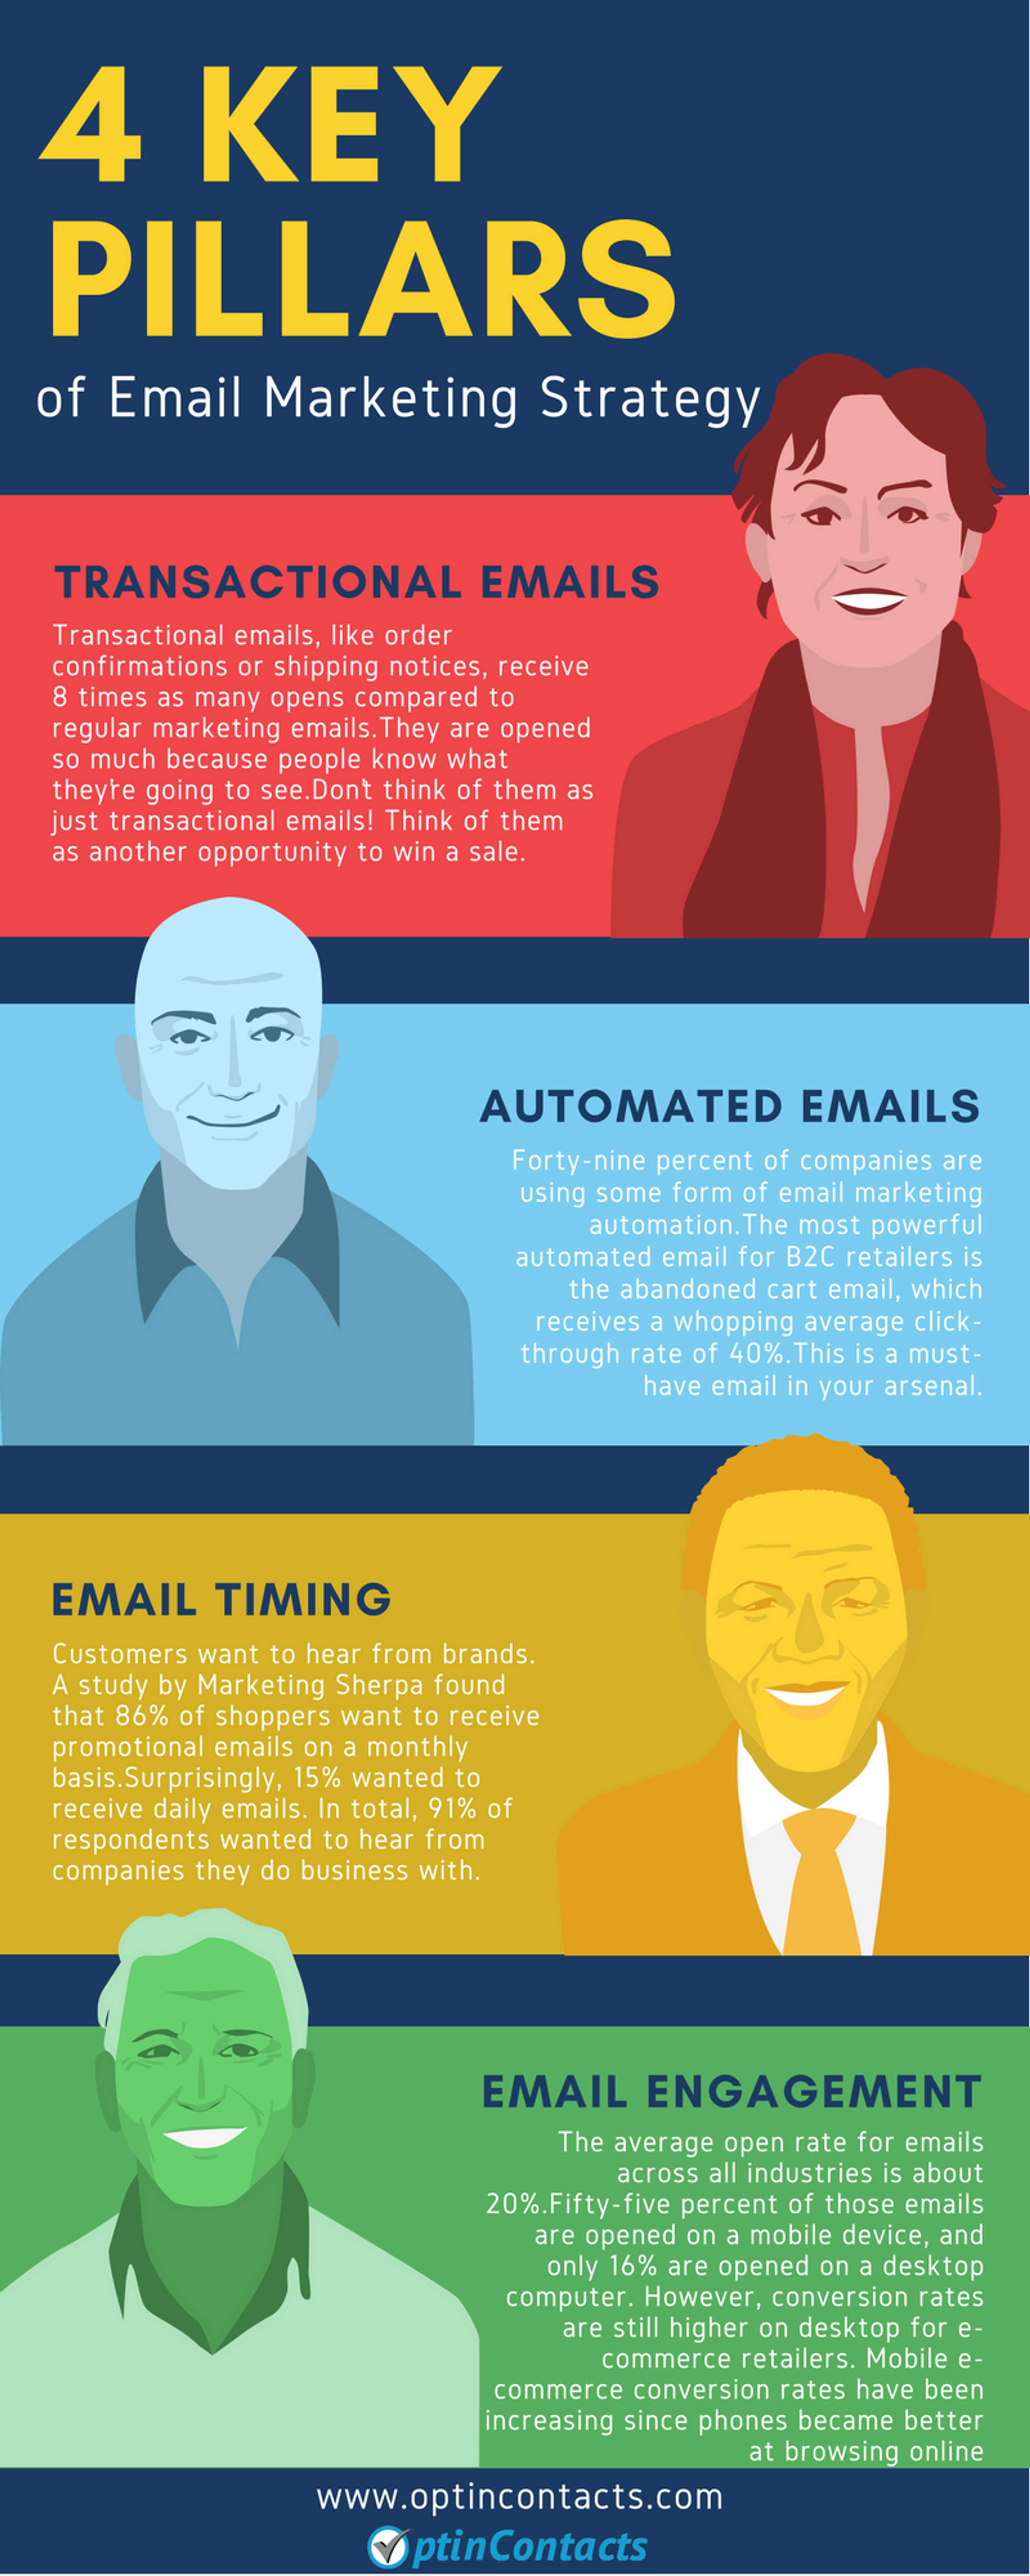 4 Key Pillars of Email Marketing Strategy | The Dots